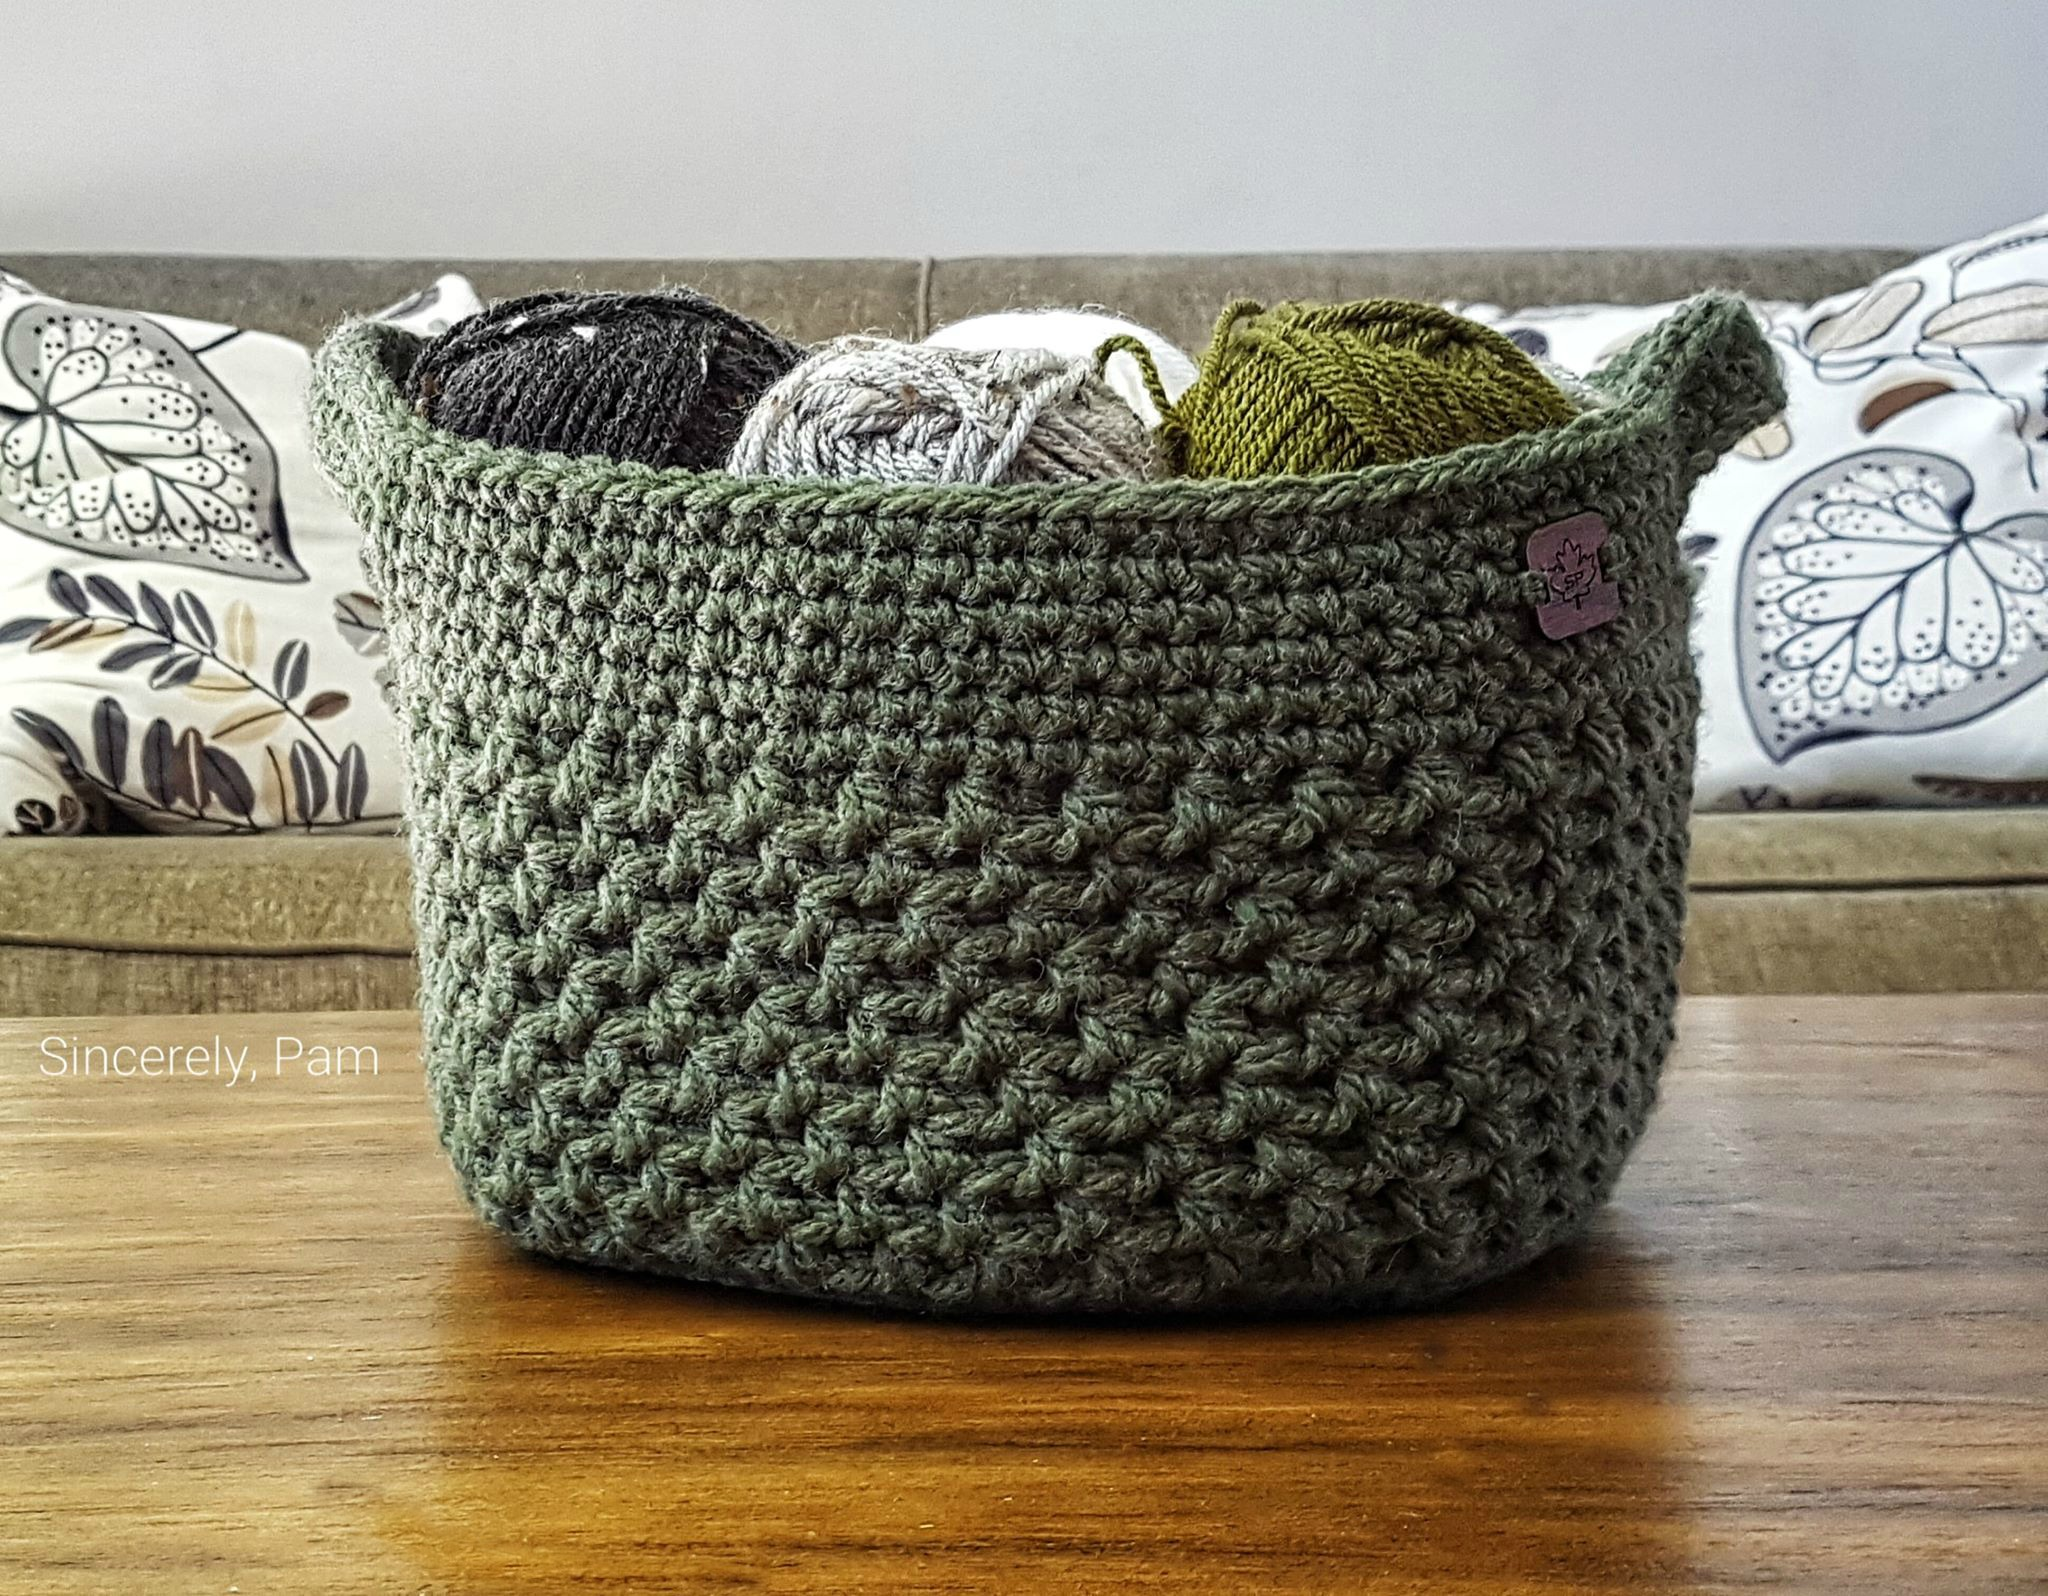 Lansdowne Basket crochet pattern, free on the Sincerely, Pam blog.